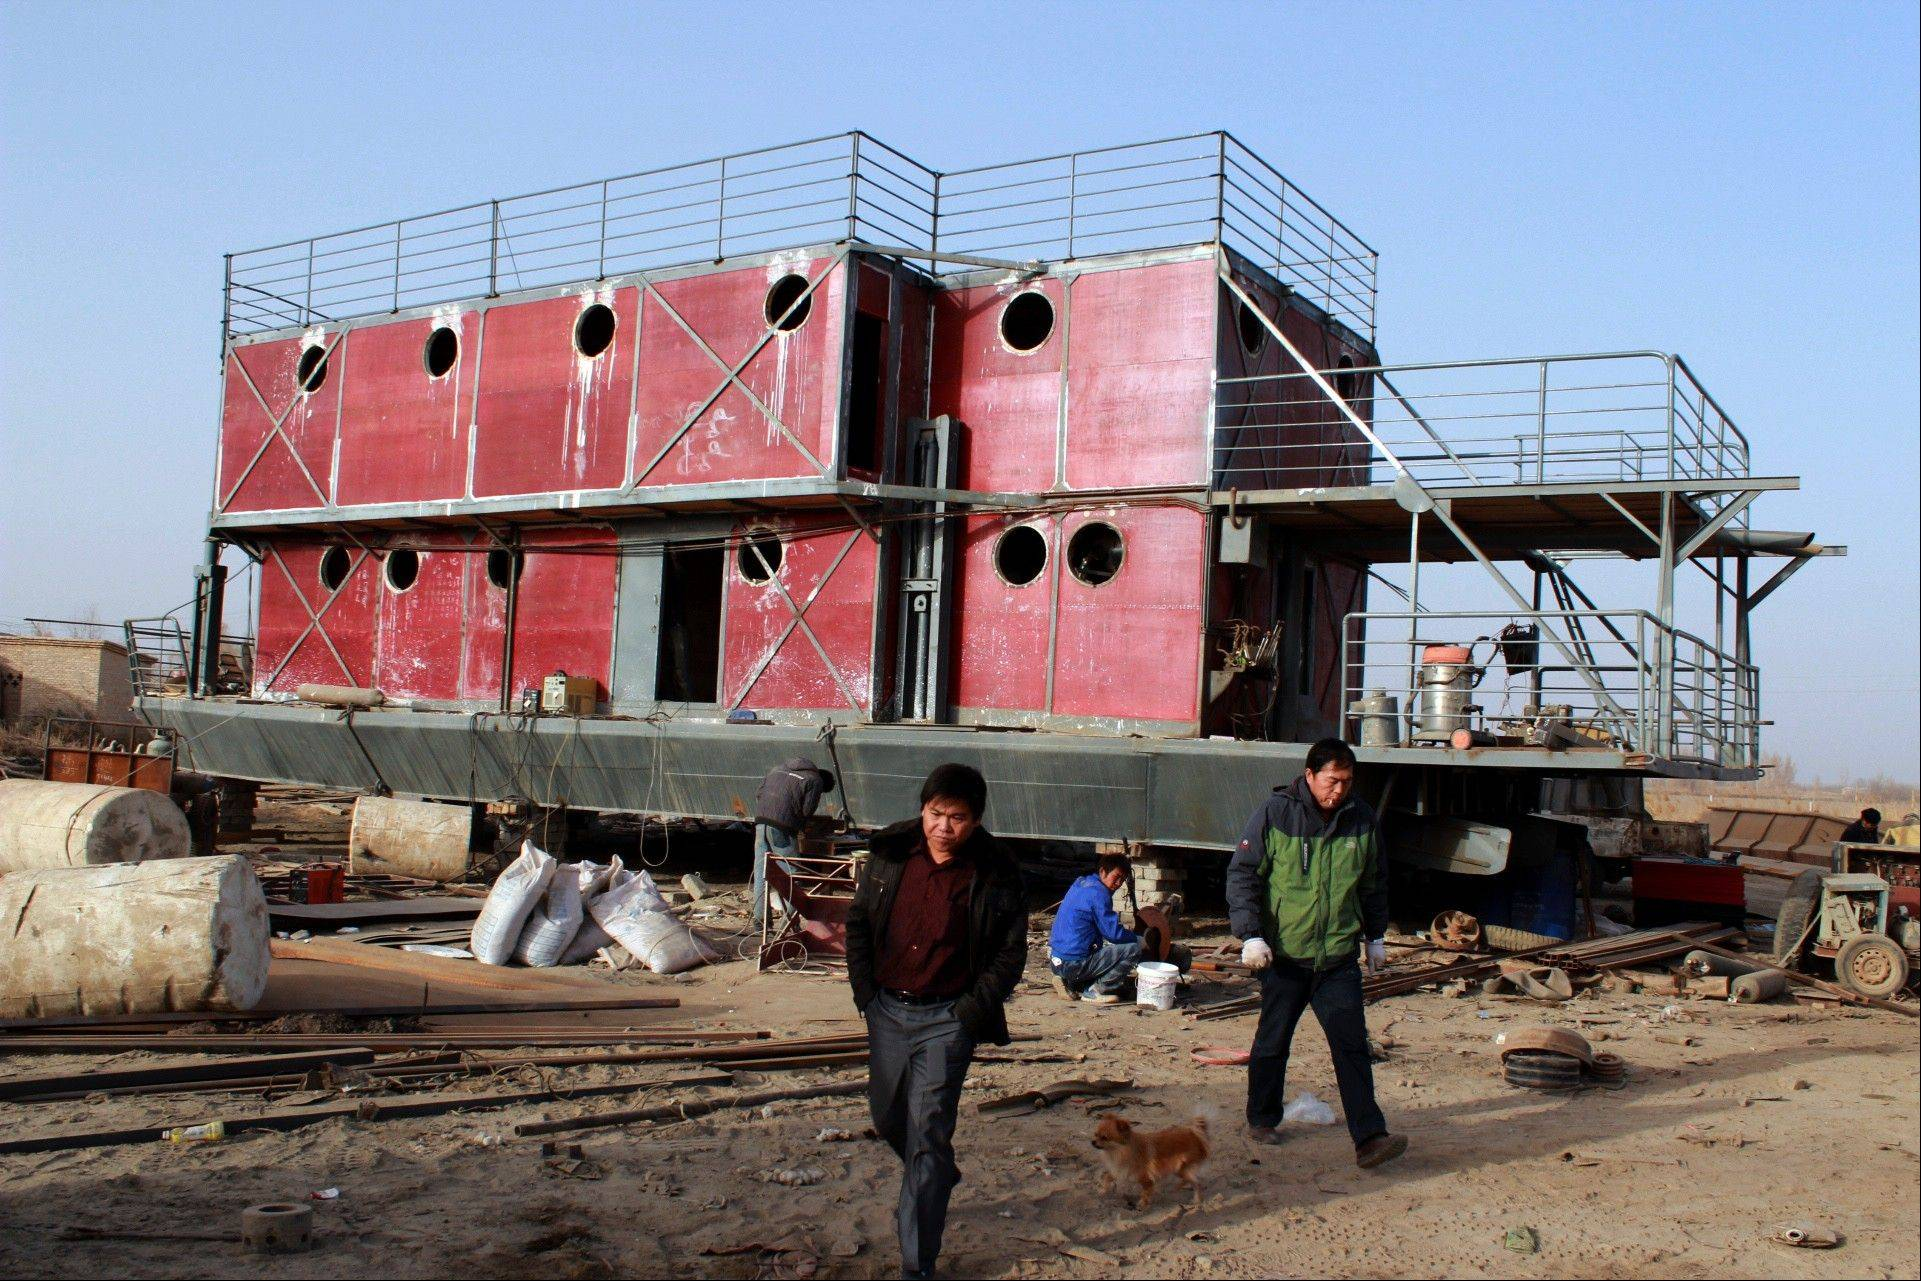 Lu Zhenghai has spent his life savings building the 70-foot-by-50-foot vessel powered by three diesel engines to help save him when he believes a flood will hit China on Dec. 21.